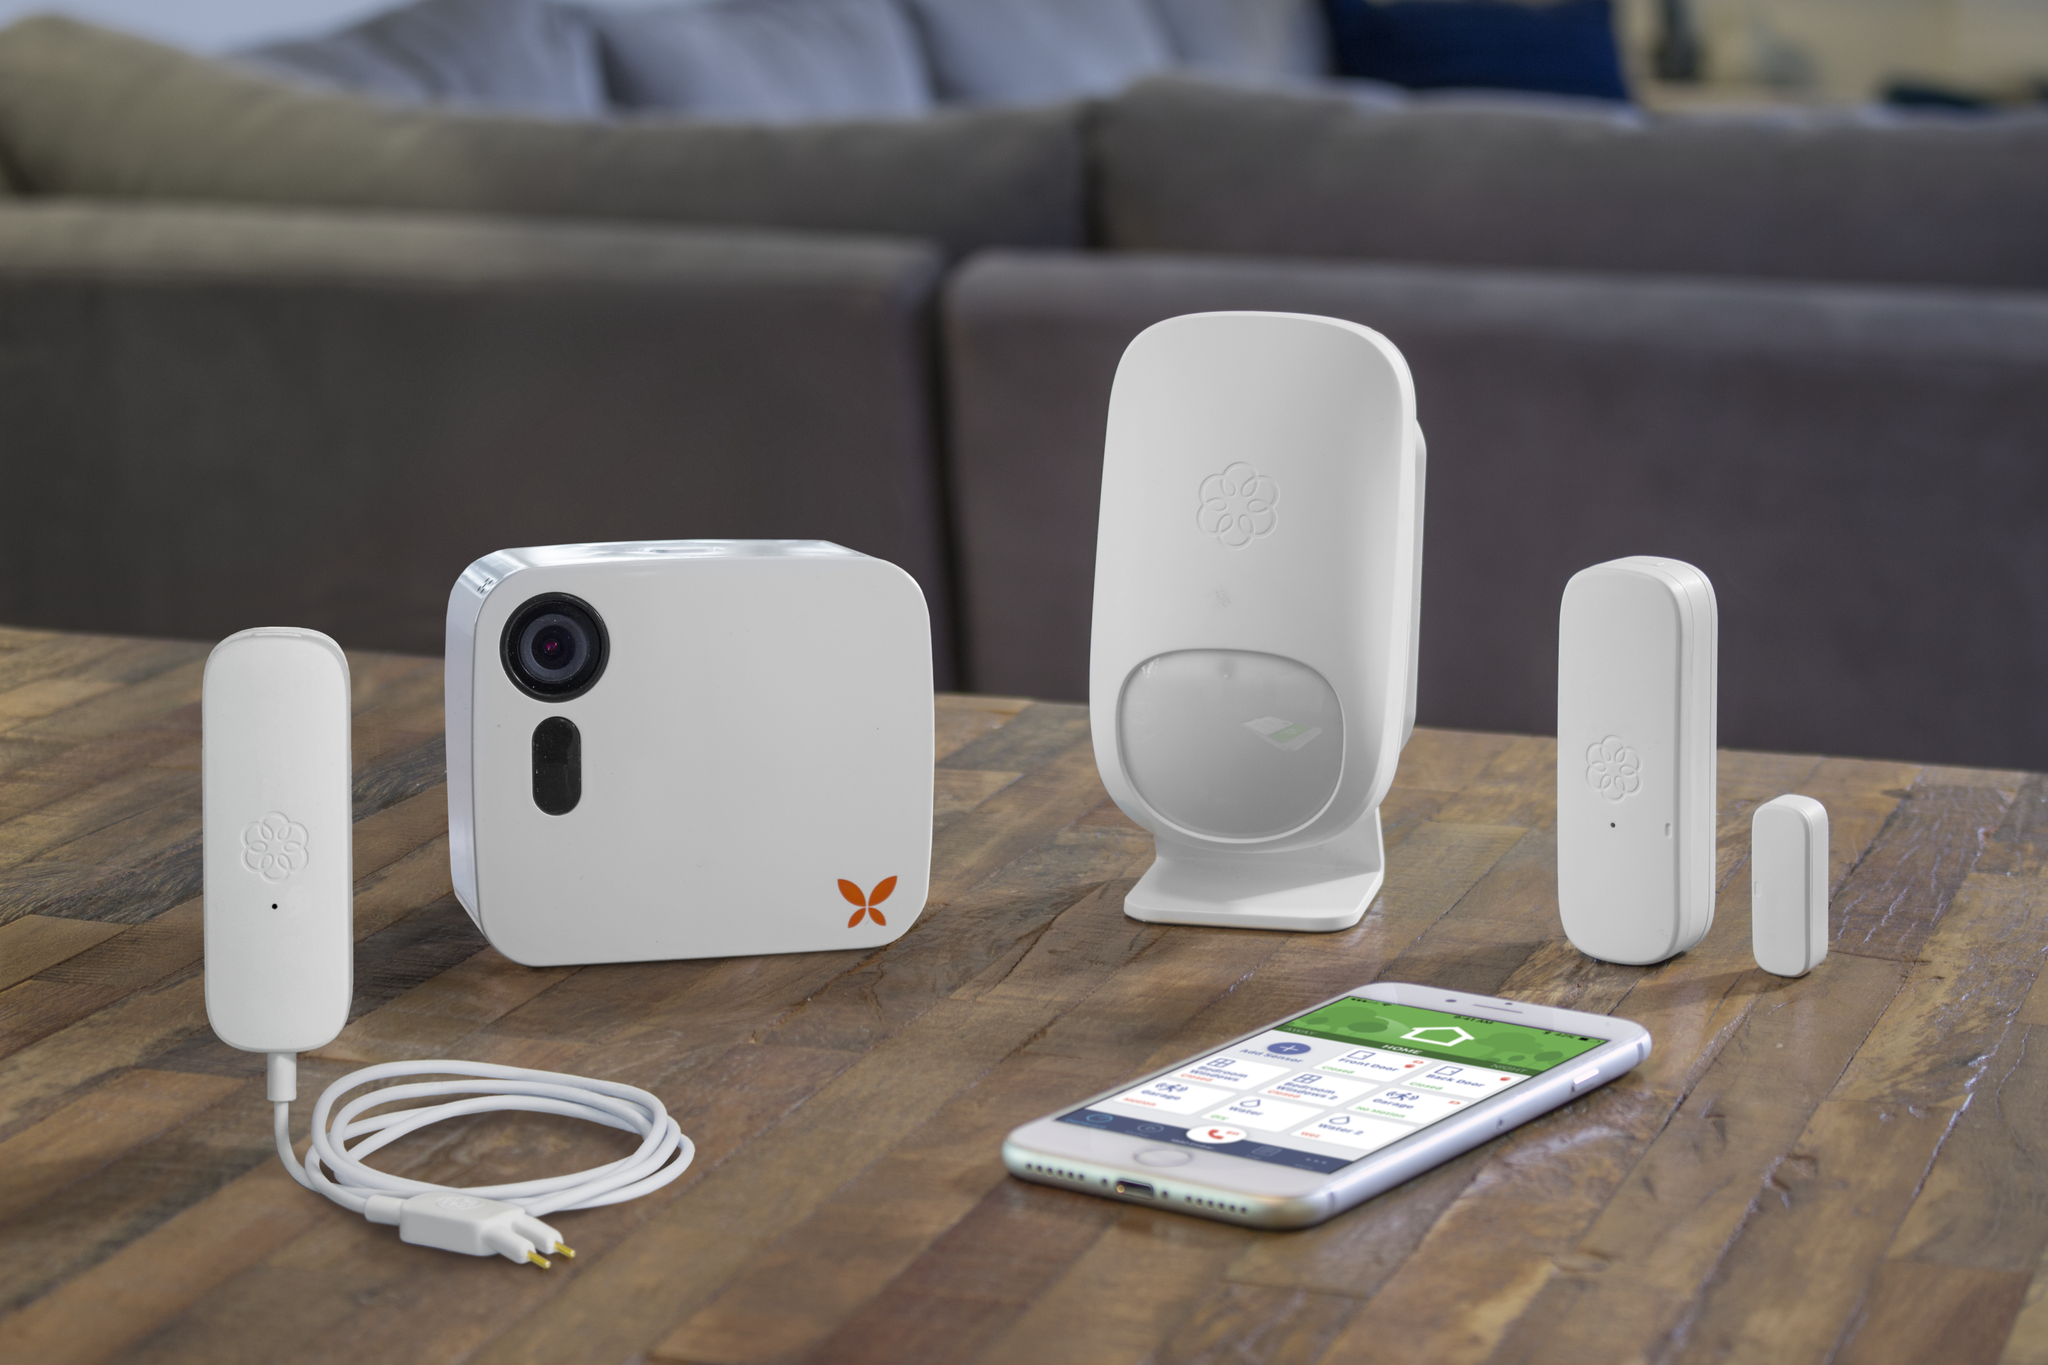 Ooma acquires AI-powered video camera platform Butterfleye for its home security service